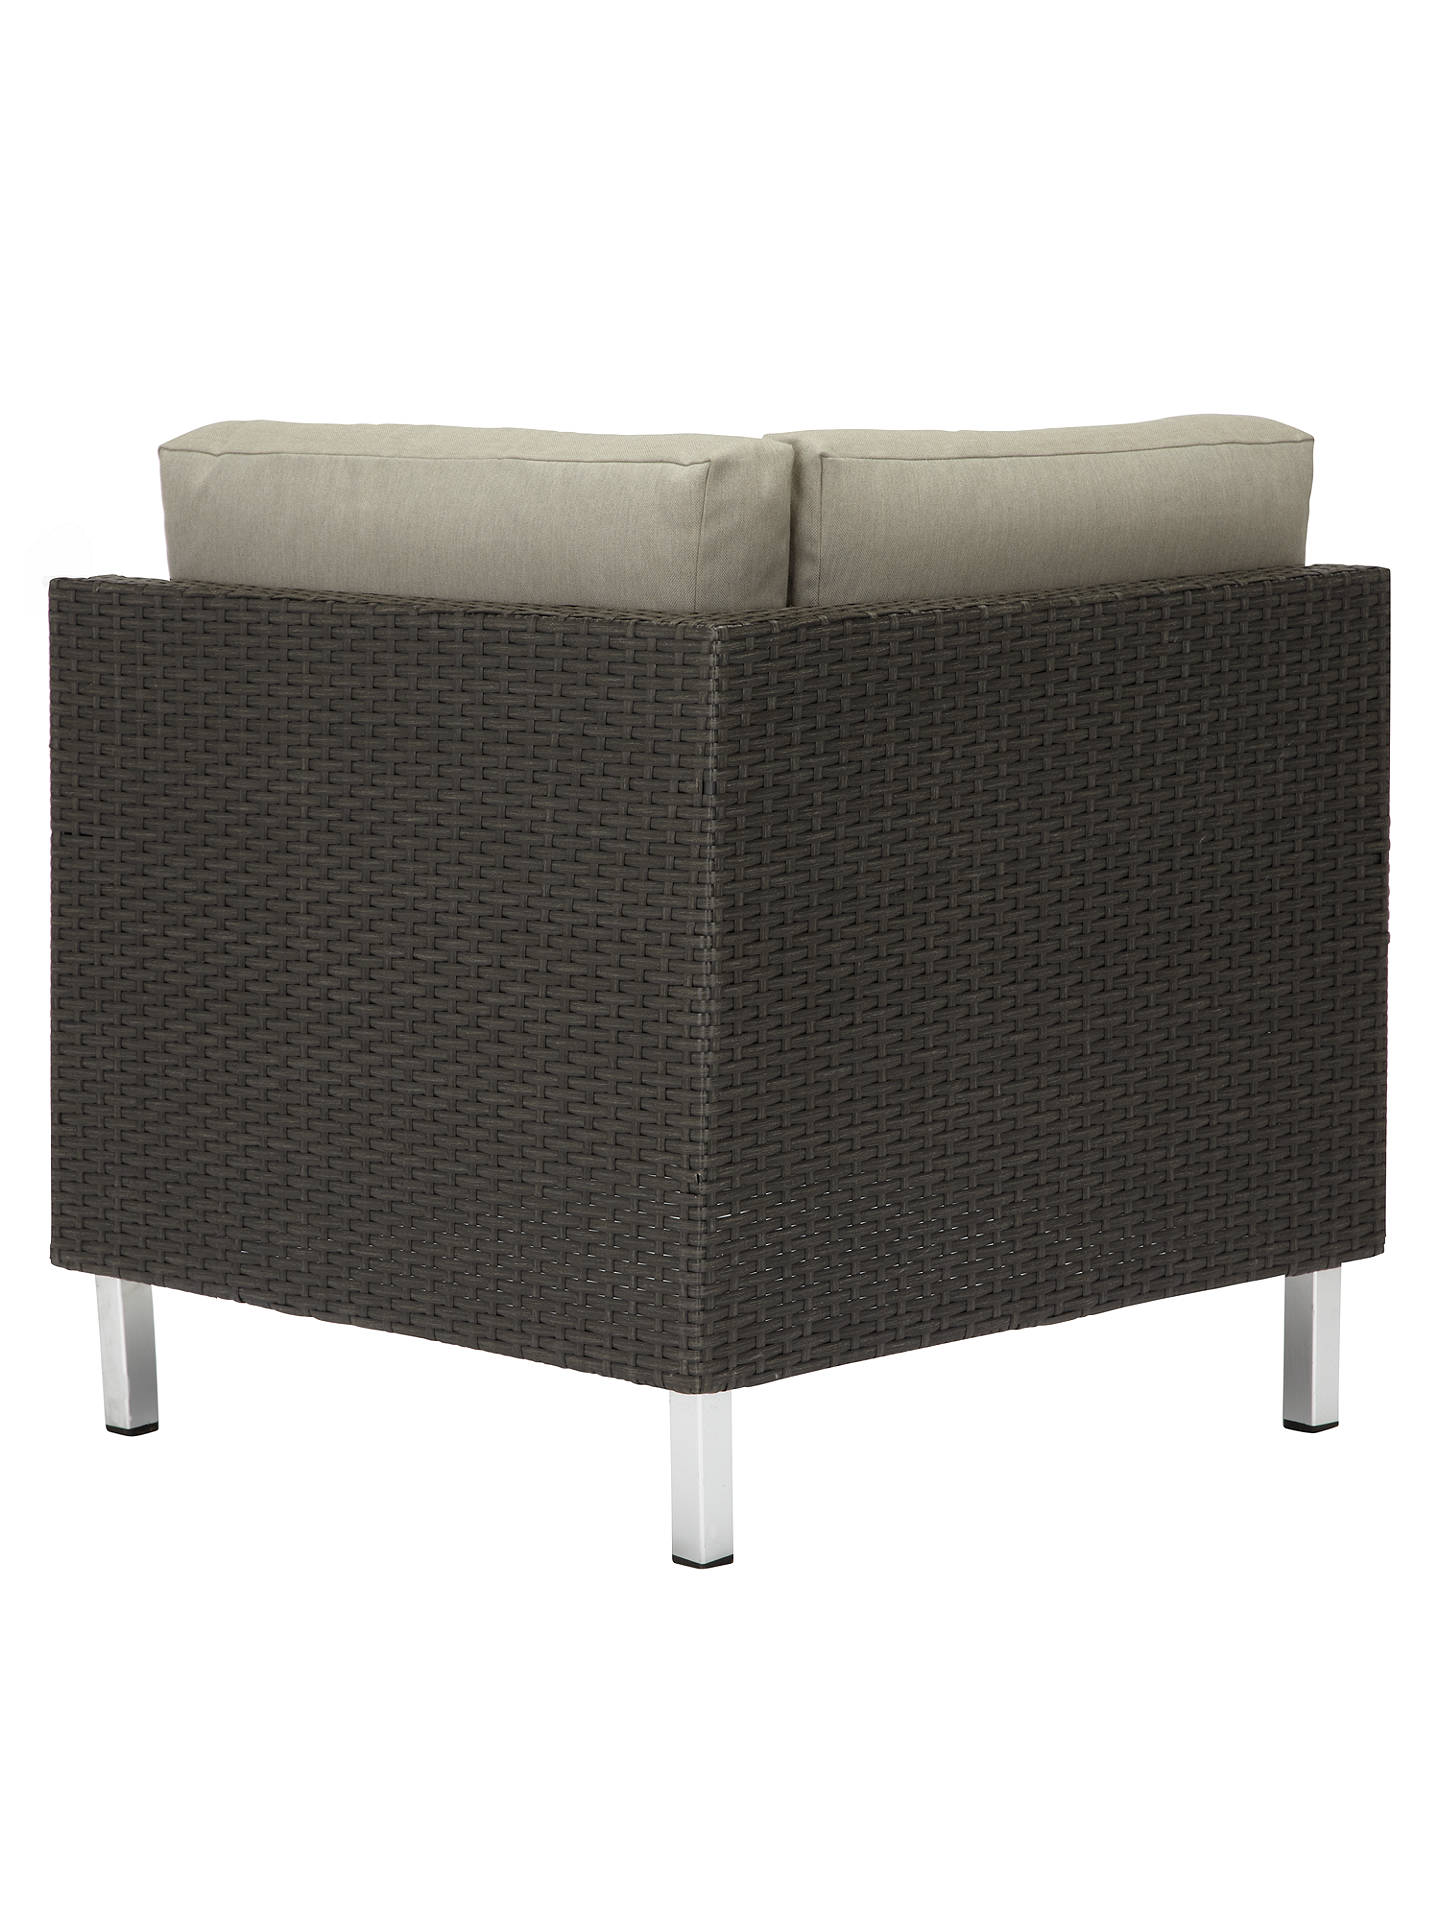 Buy John Lewis & Partners Madrid Modular Corner Unit, Brown Online at johnlewis.com